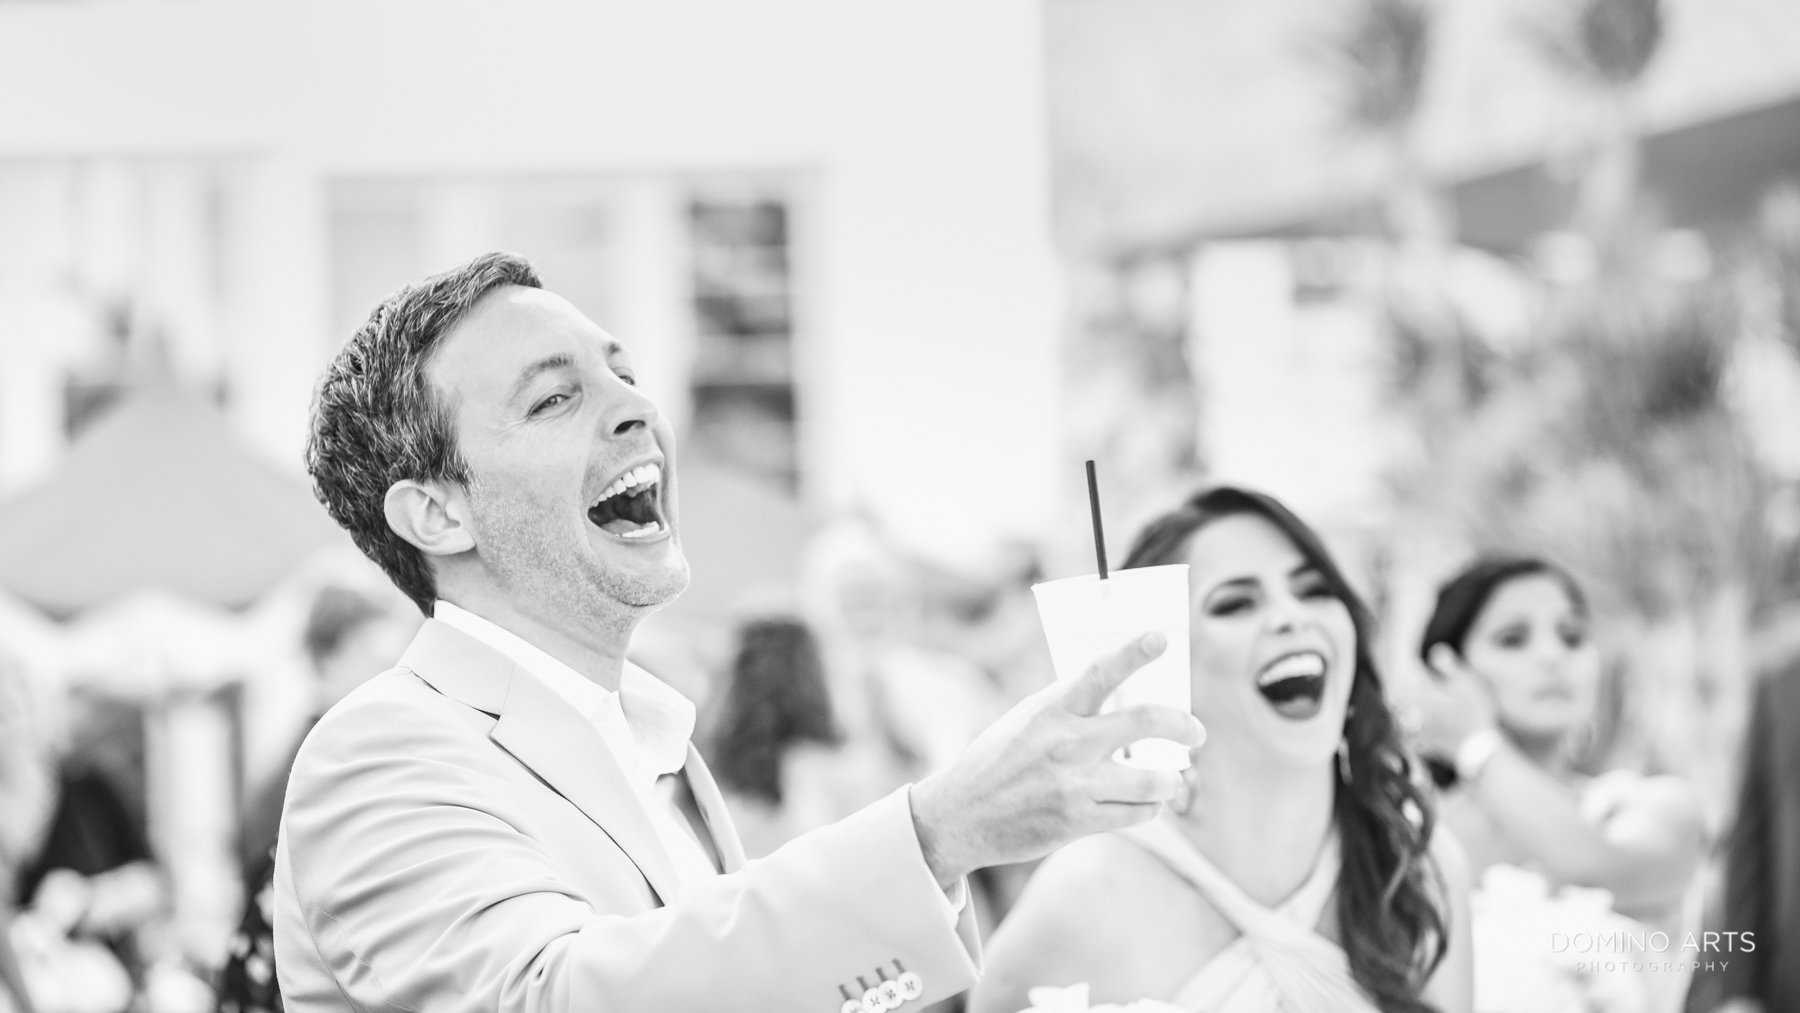 Fun wwedding picture at Luxury Destination Beach Wedding Photography at Faena Hotel